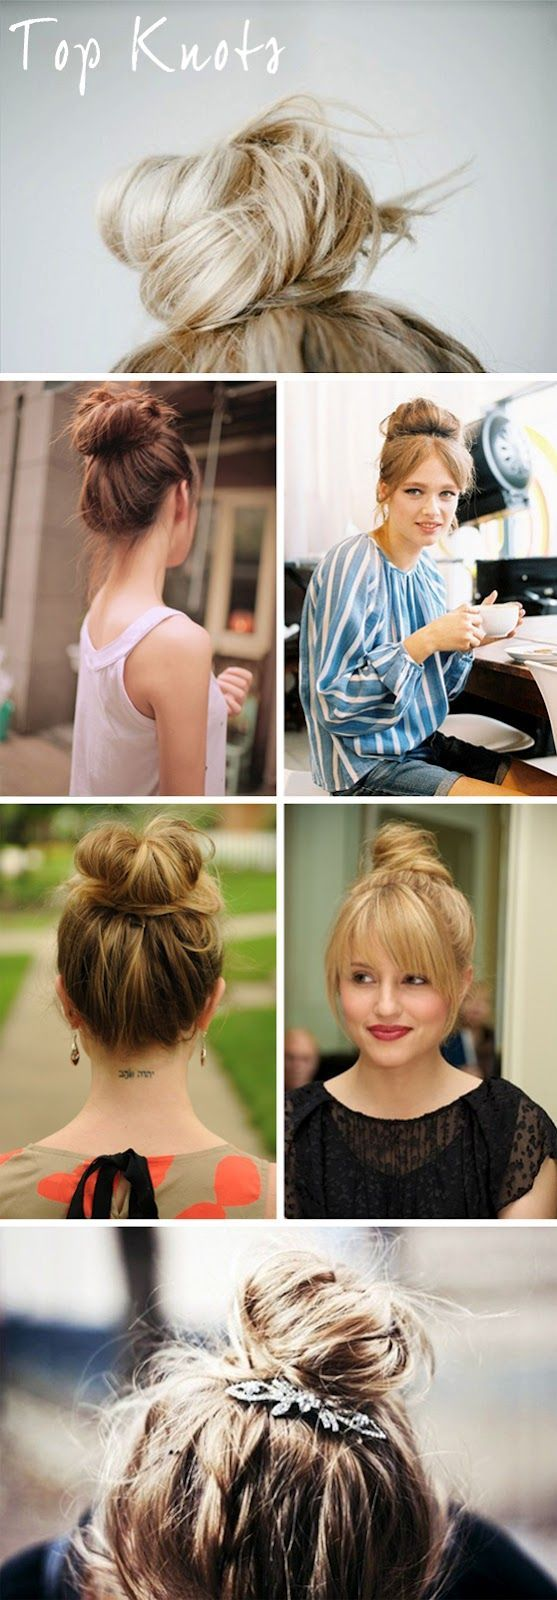 Hair Files The Top Knot Cheveux mi long, Modele de